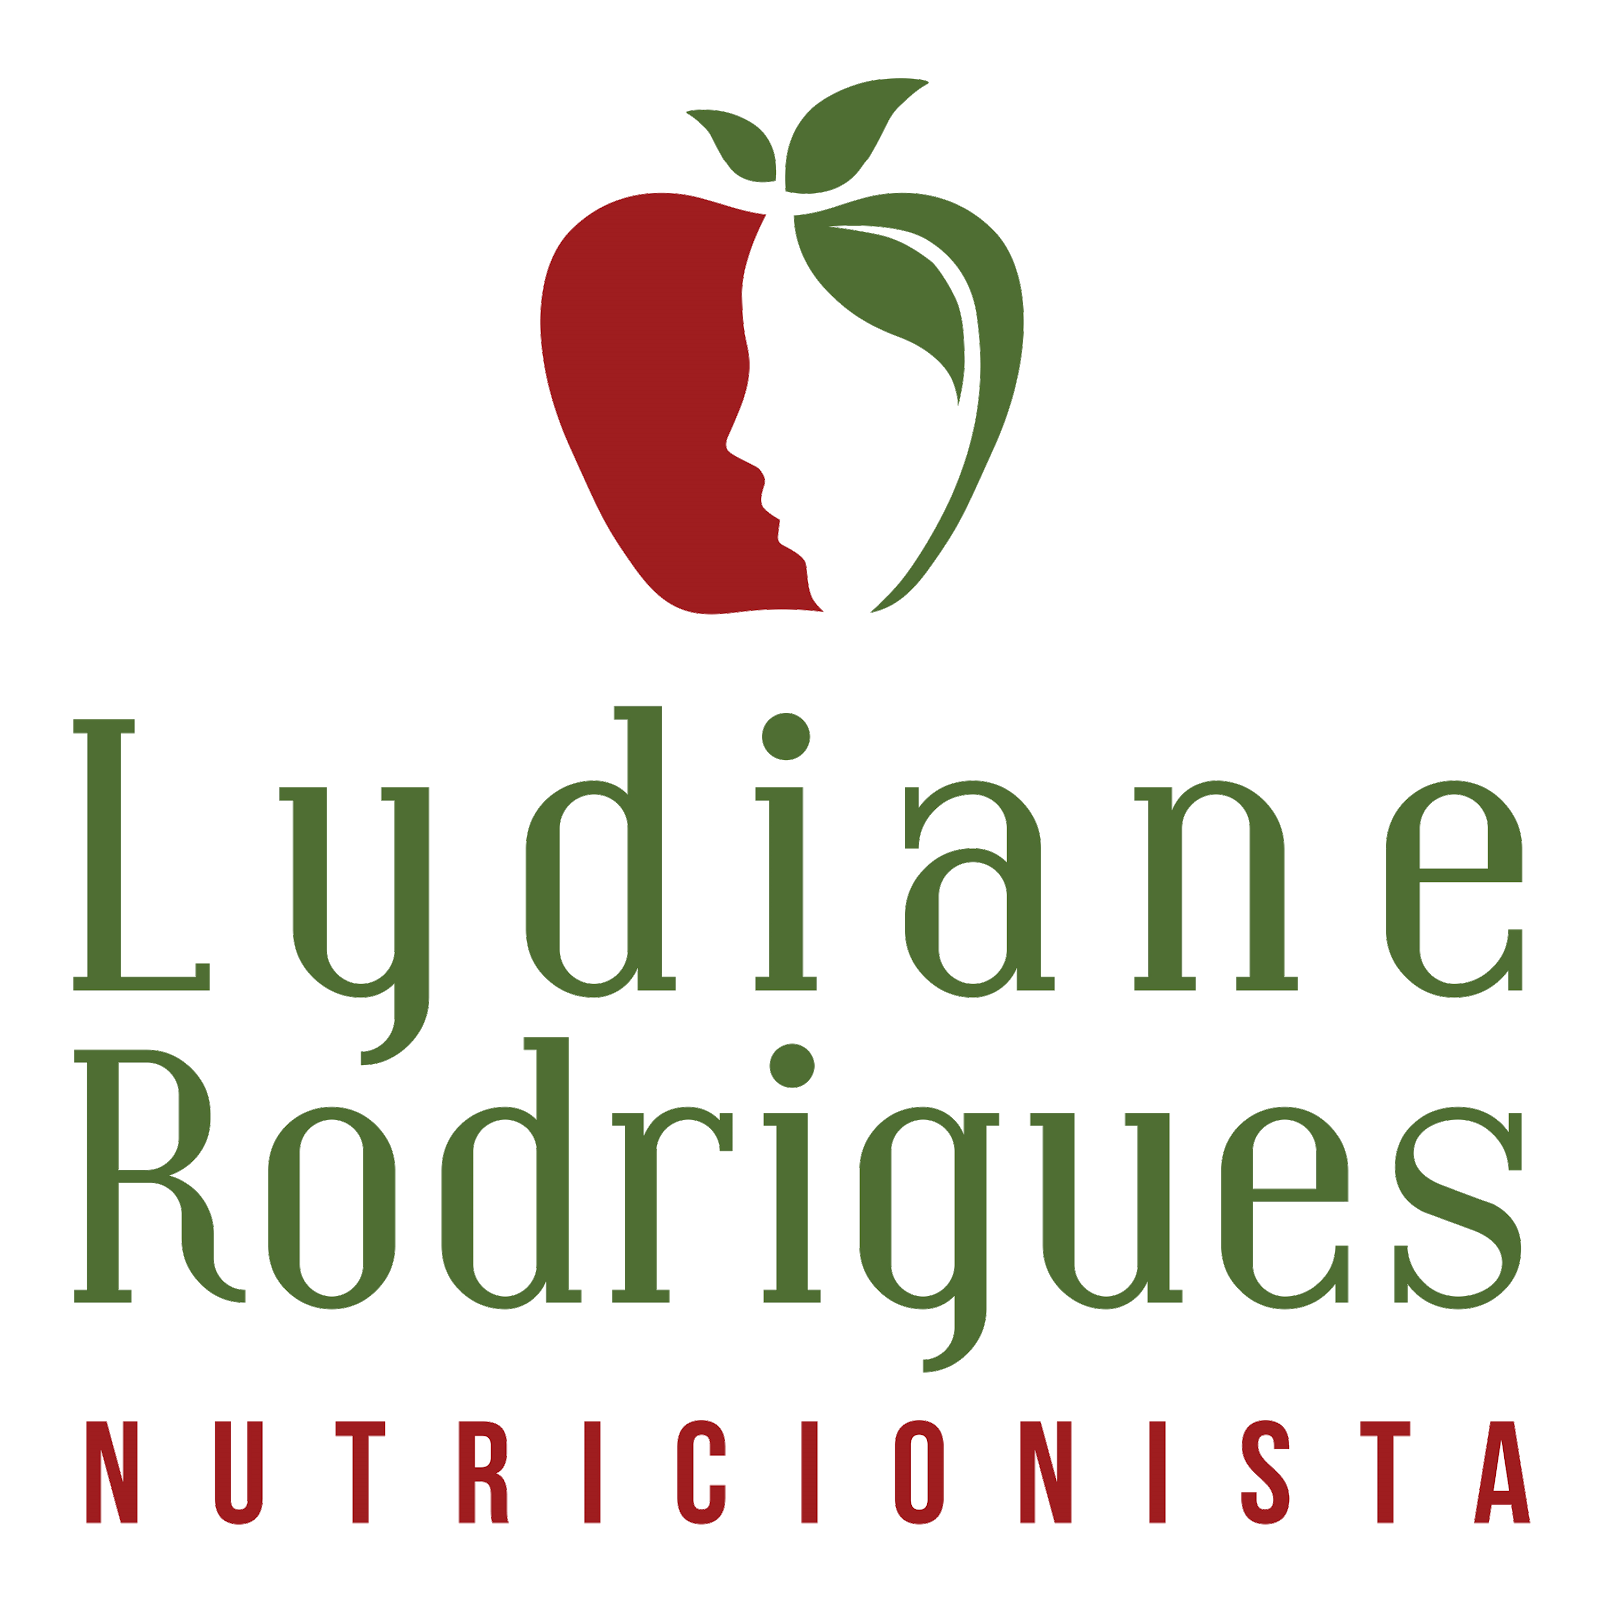 Lydiane Rodrigues